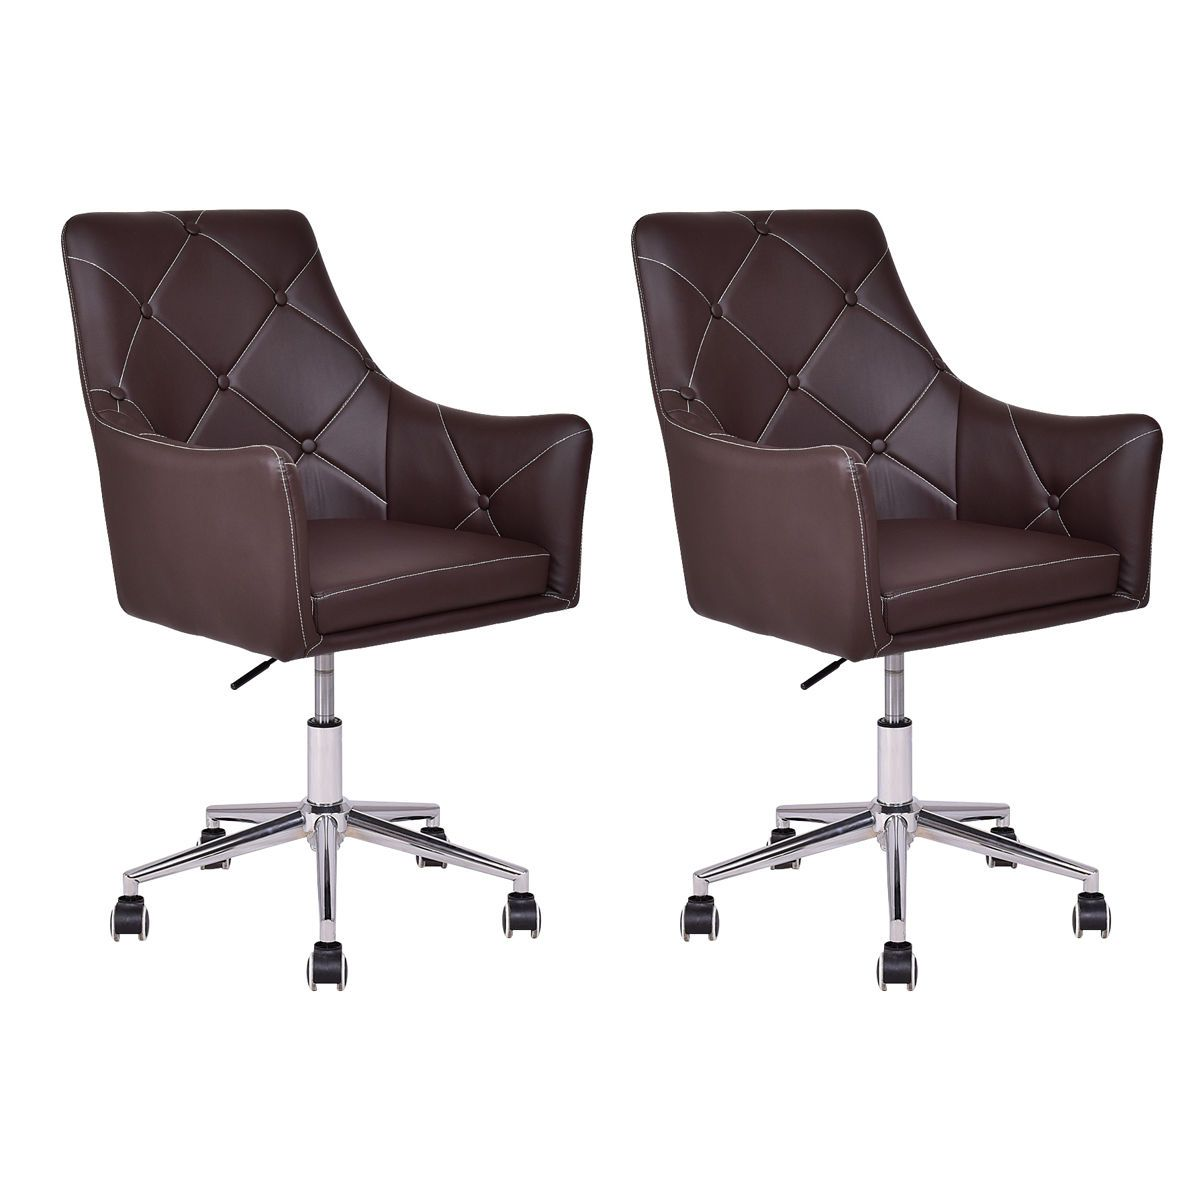 2 Piece Modern Tufted PU Leather Swivel Chair